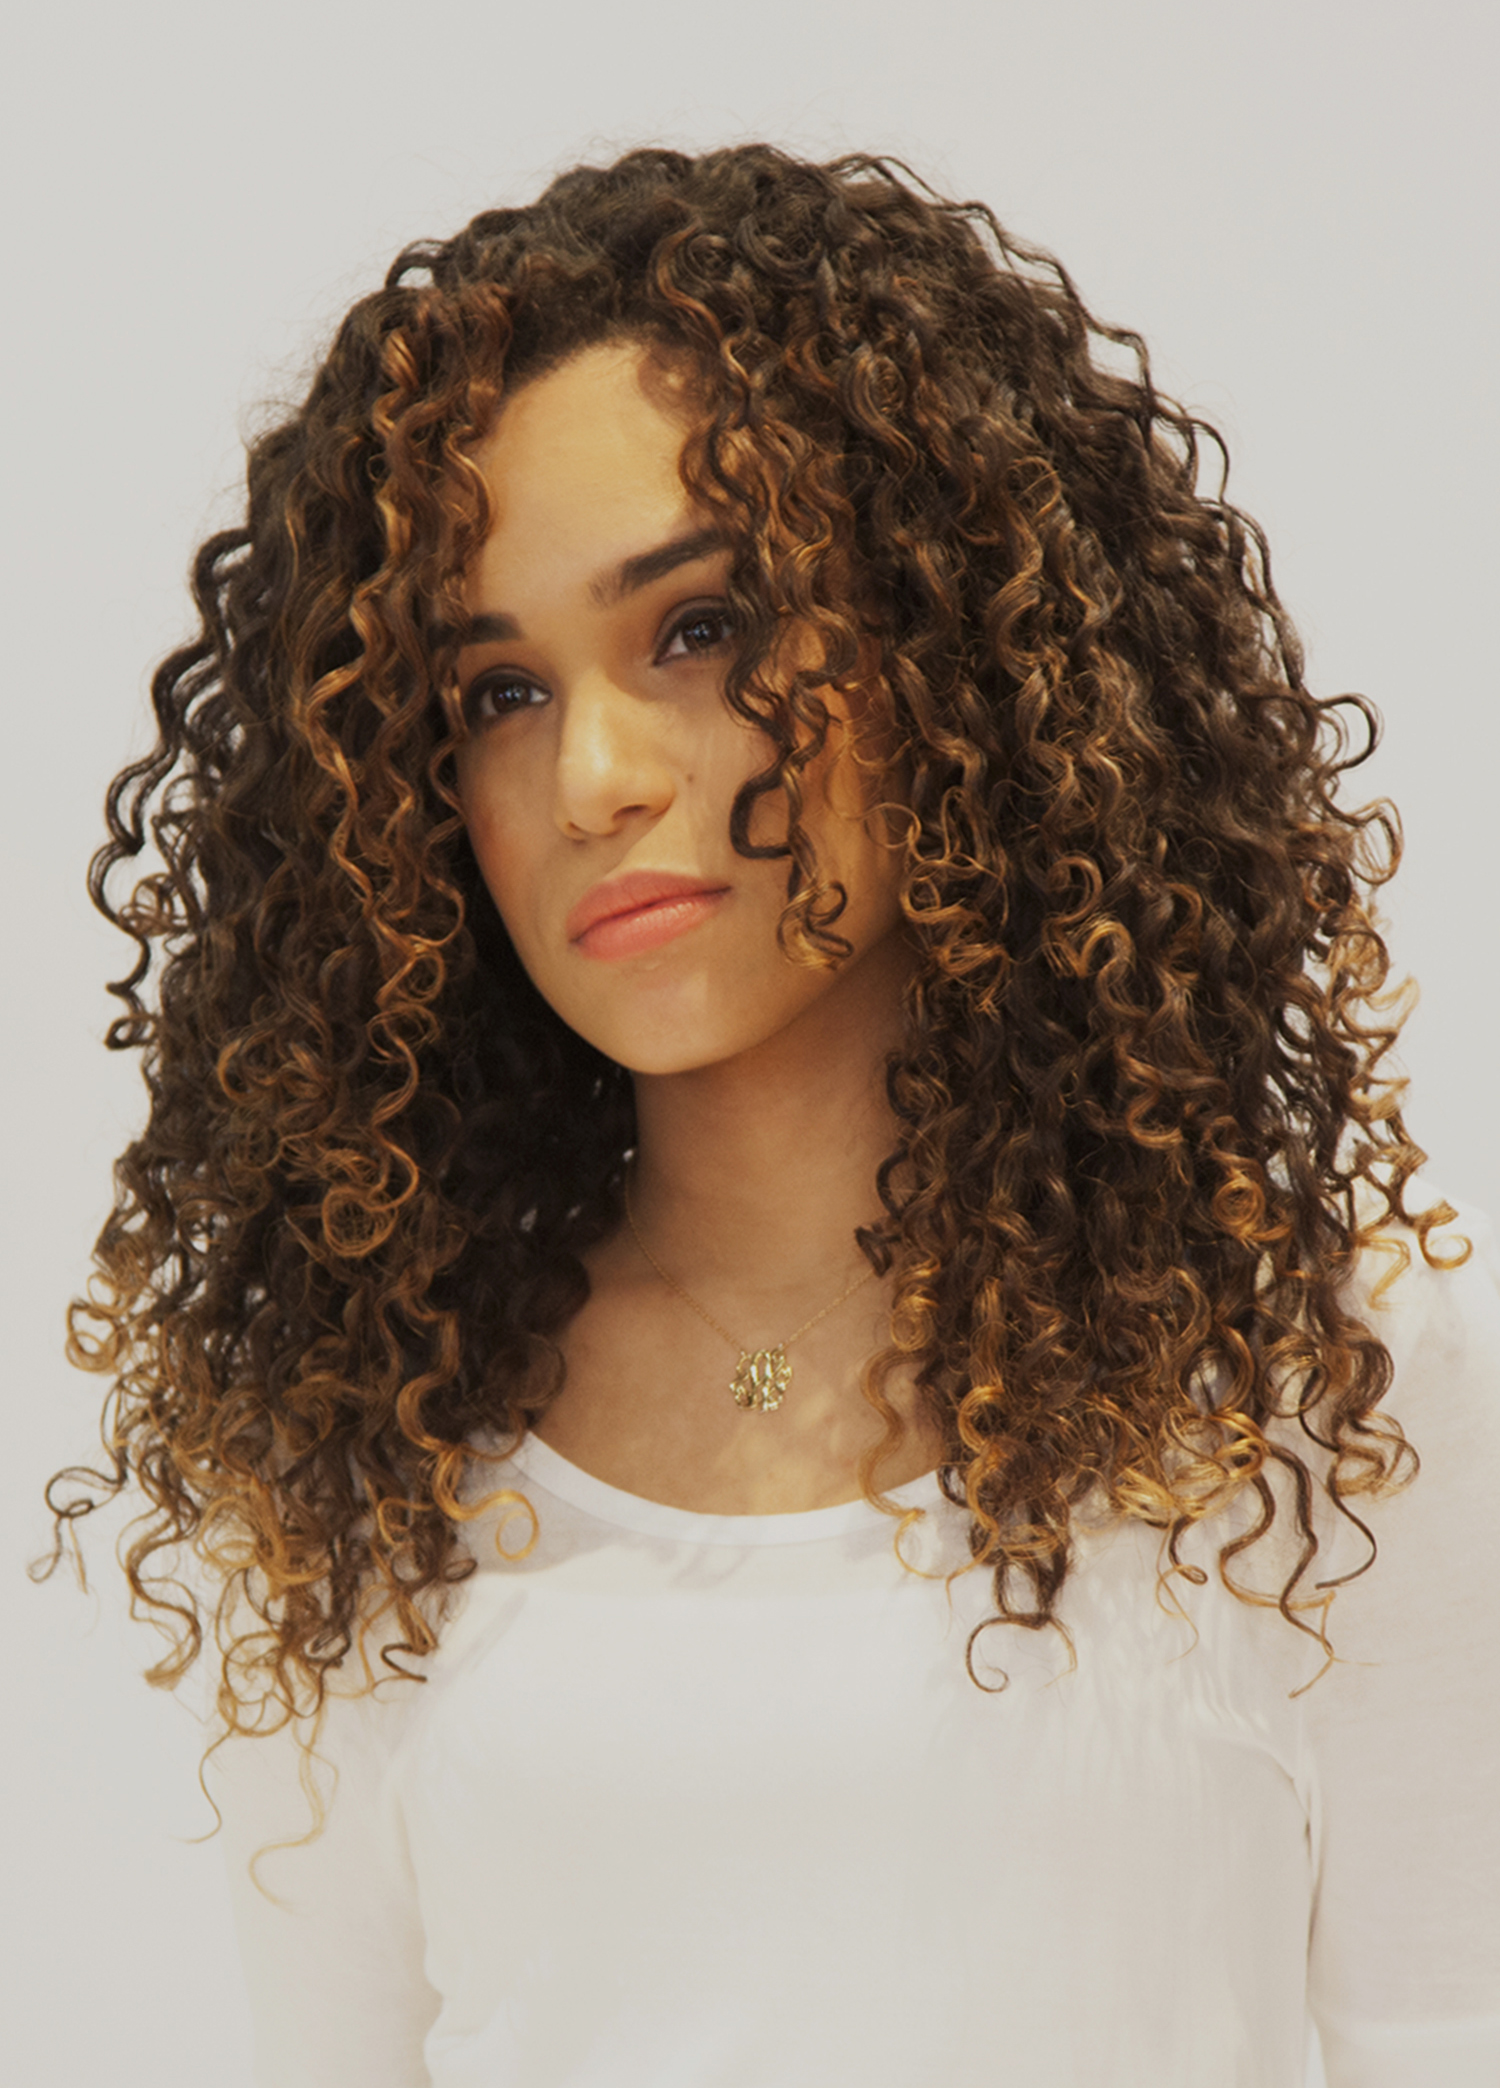 NATURALLY CURLY (2016)